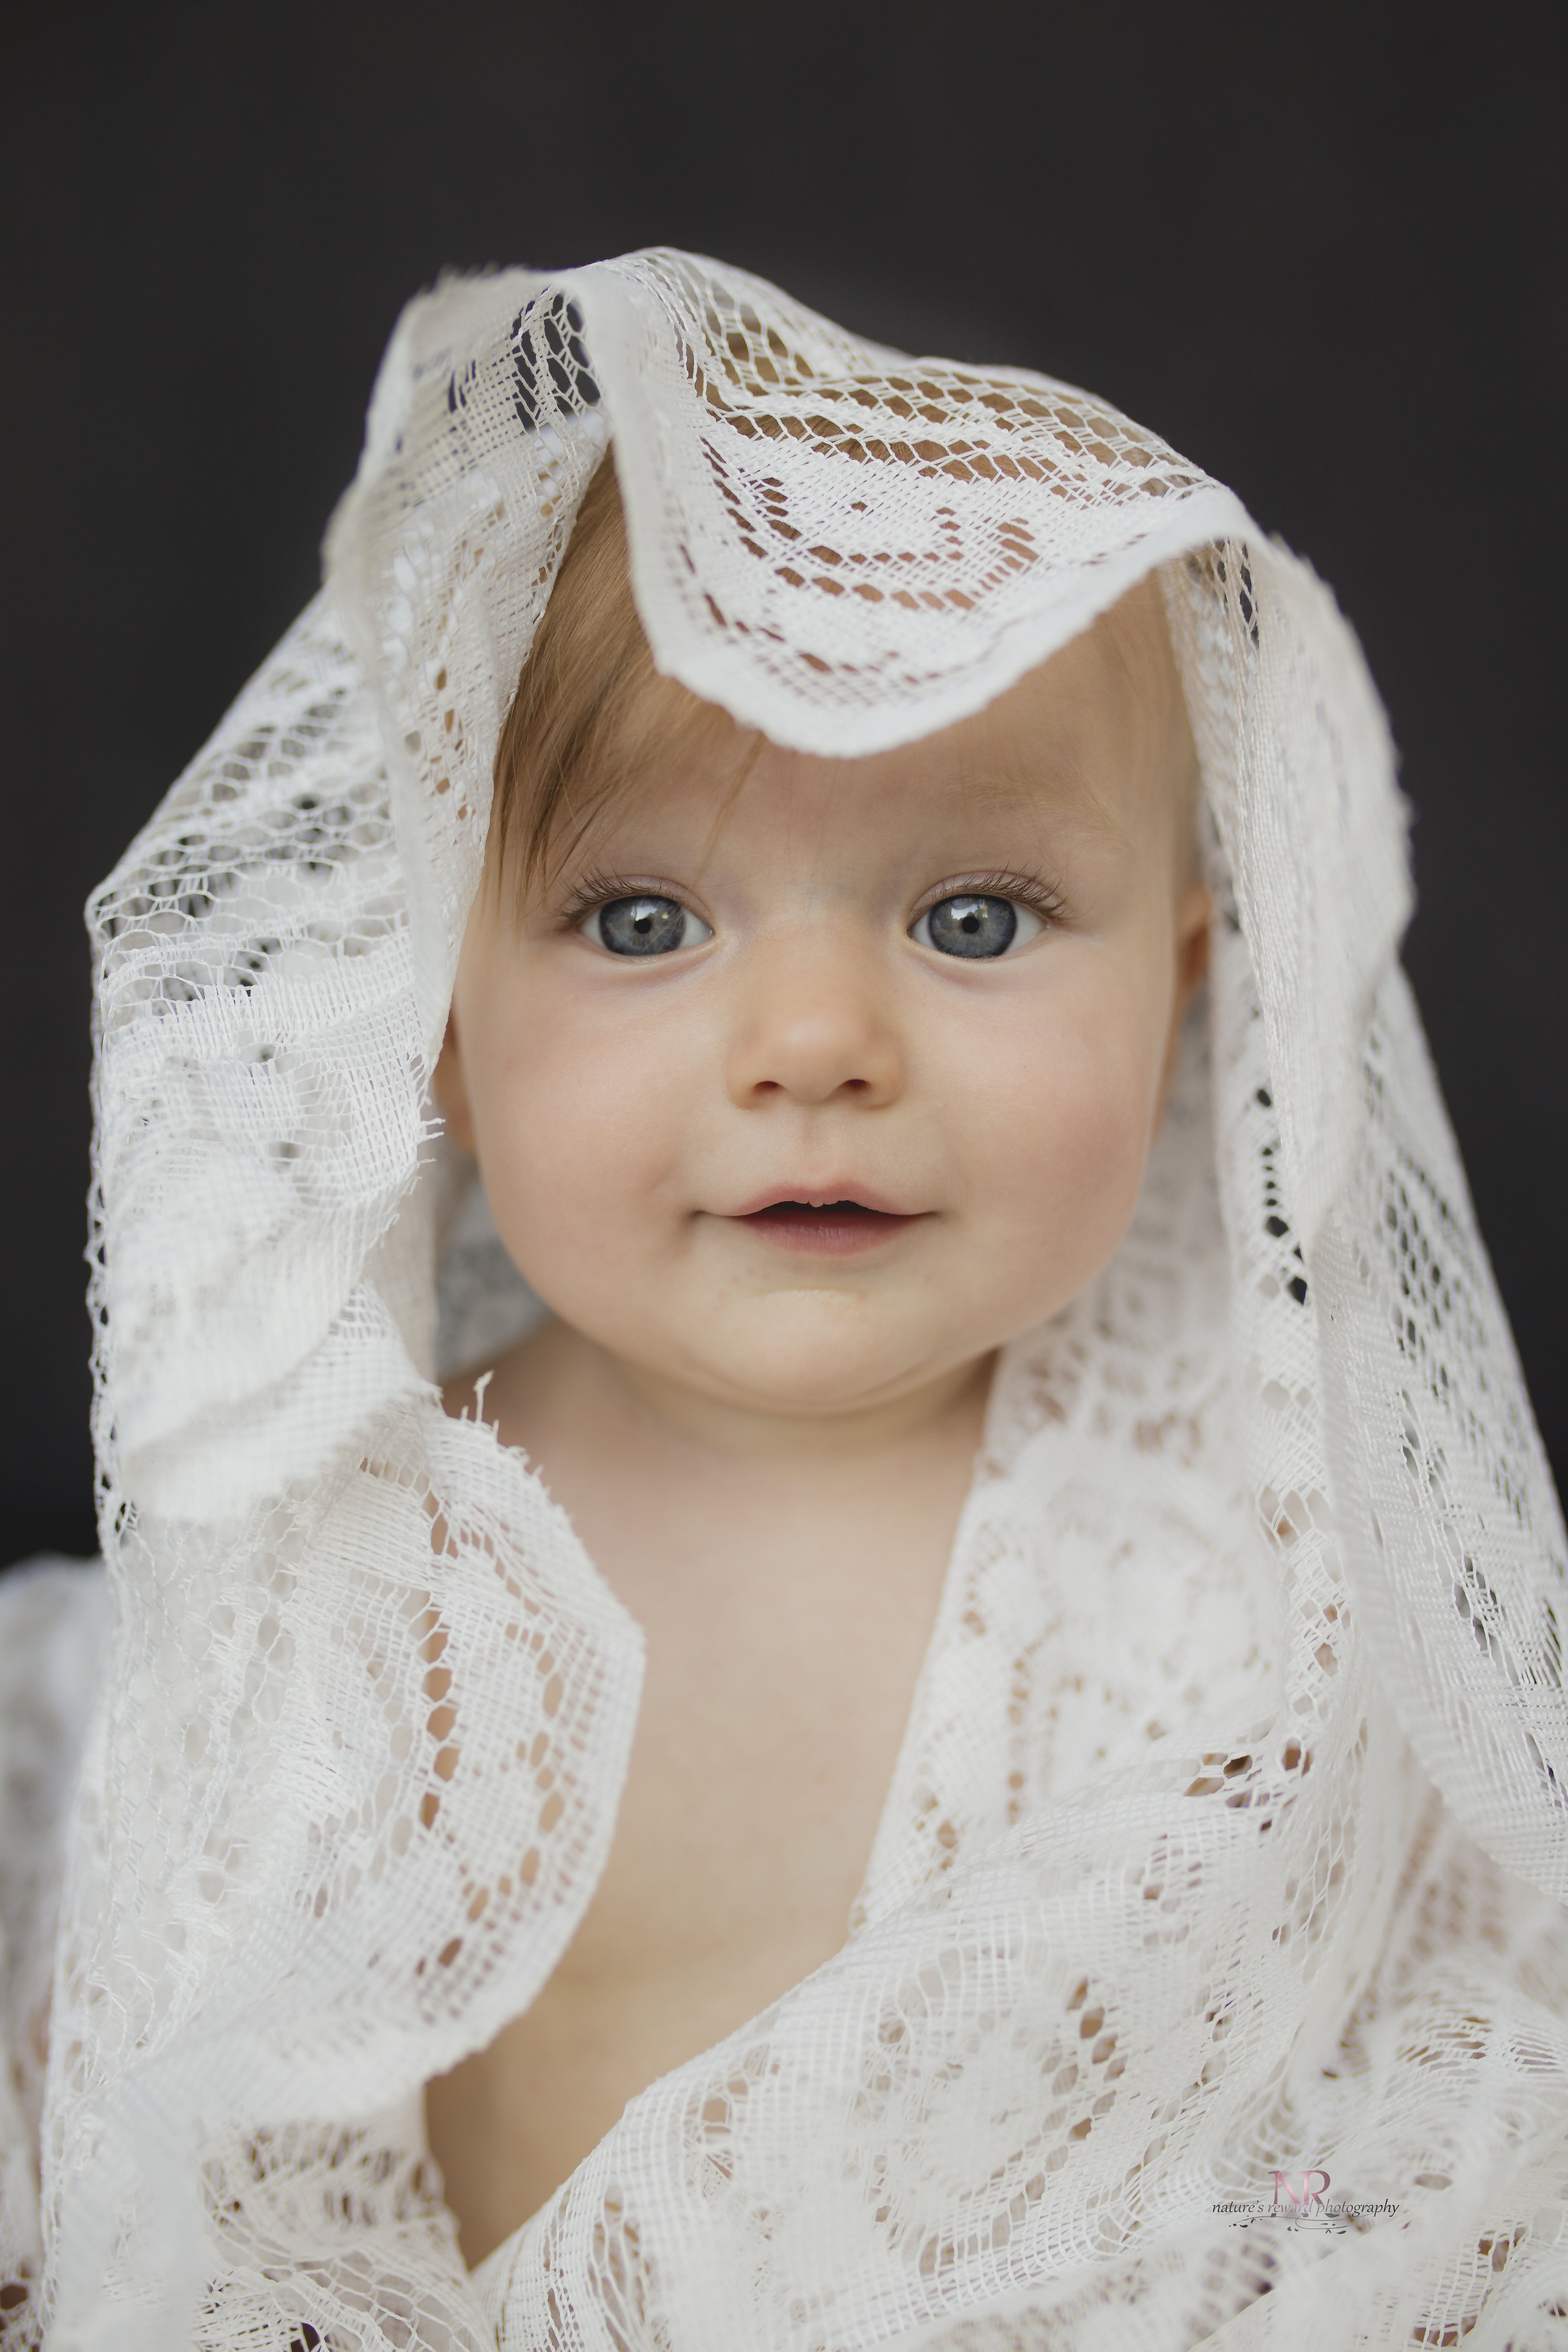 One o f my favorites from the session. Love the smirk and the big eyes! This is a forever on the wall kind of picture!